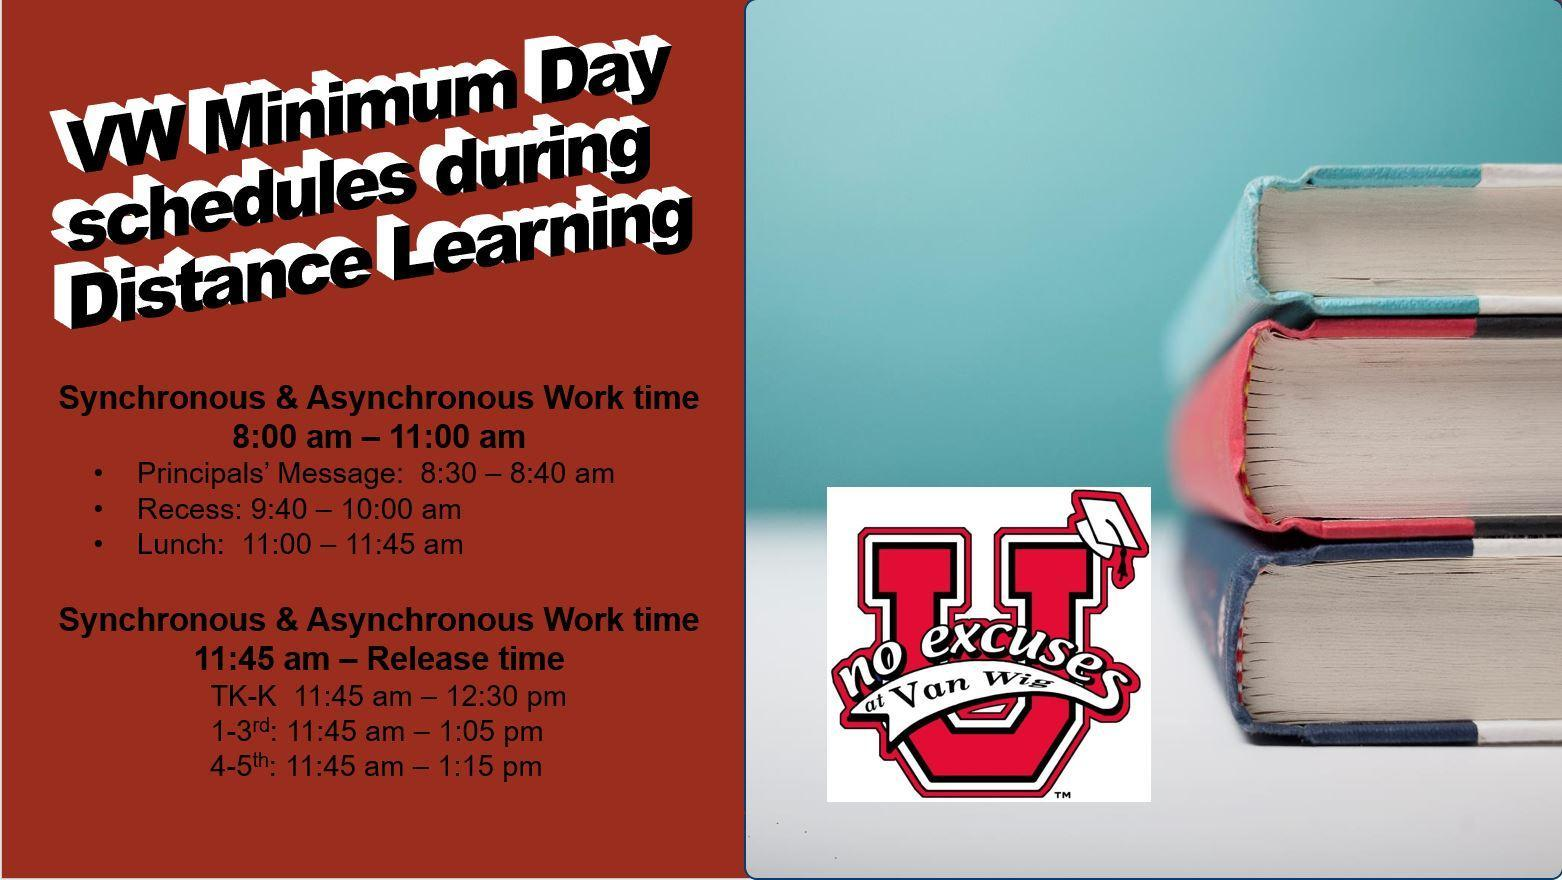 Picture of books and No Excuses University logo with the schedule for Minimum Day